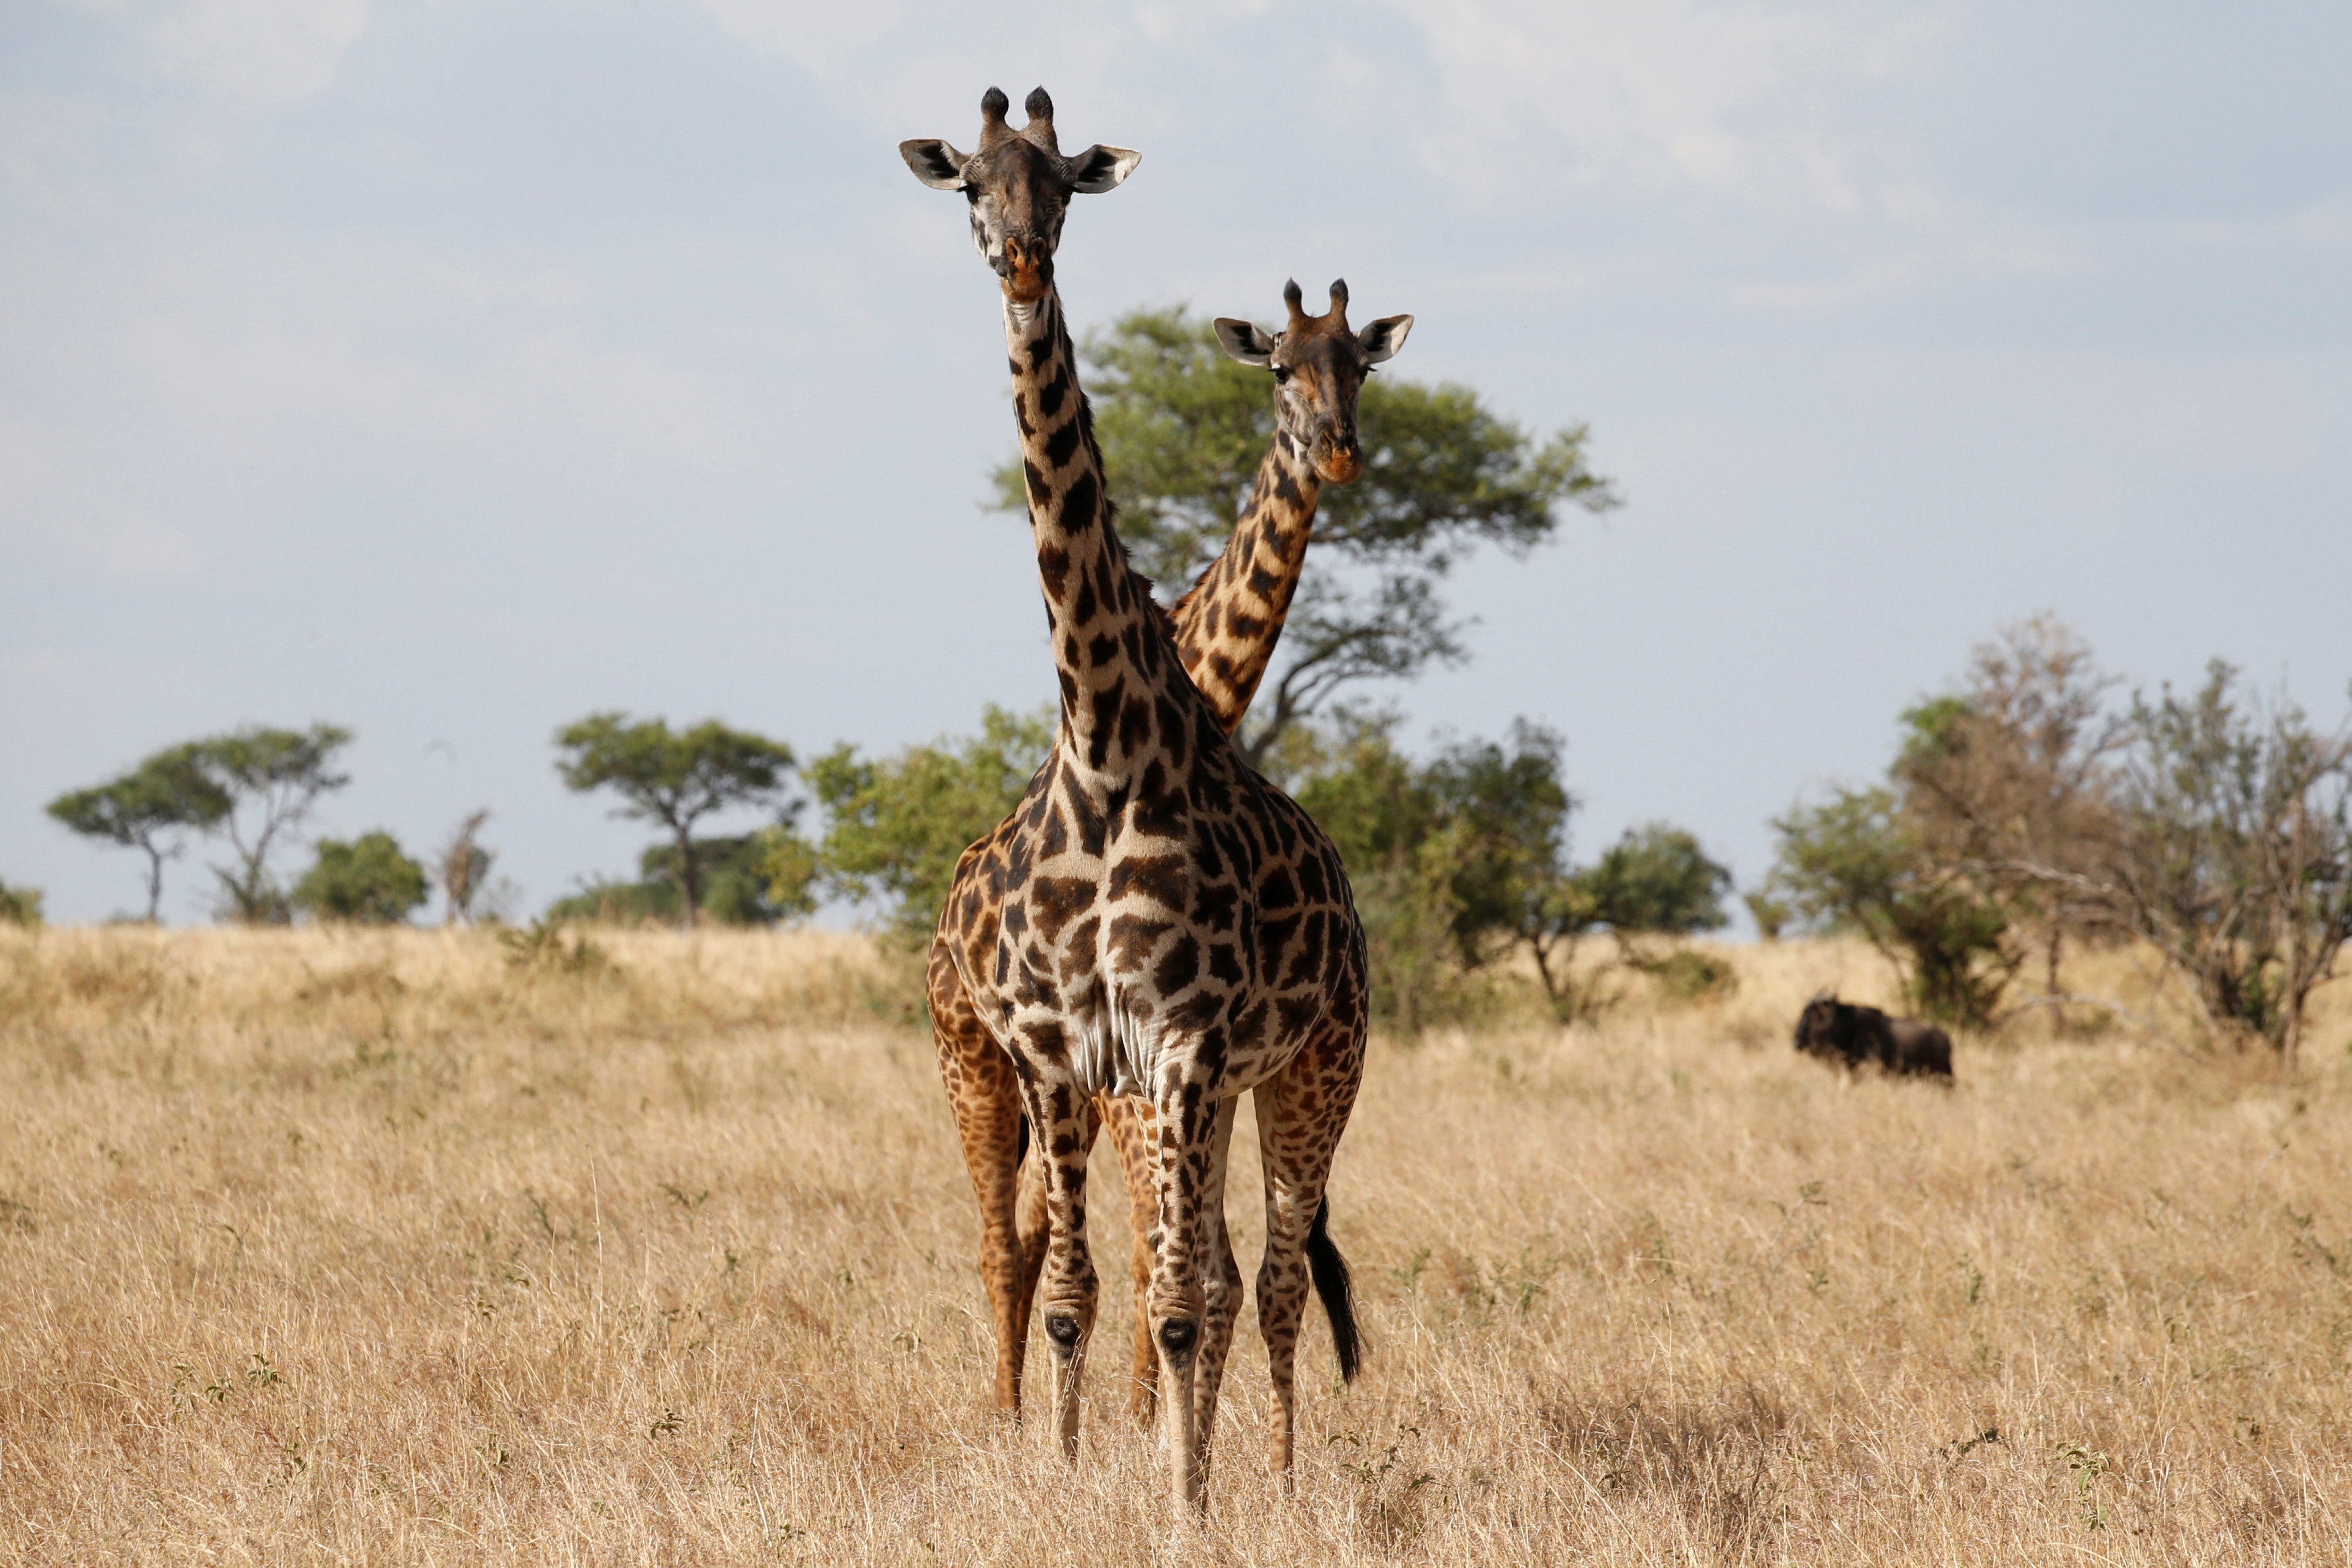 Giraffes are seen at the Singita Grumeti Game Reserve